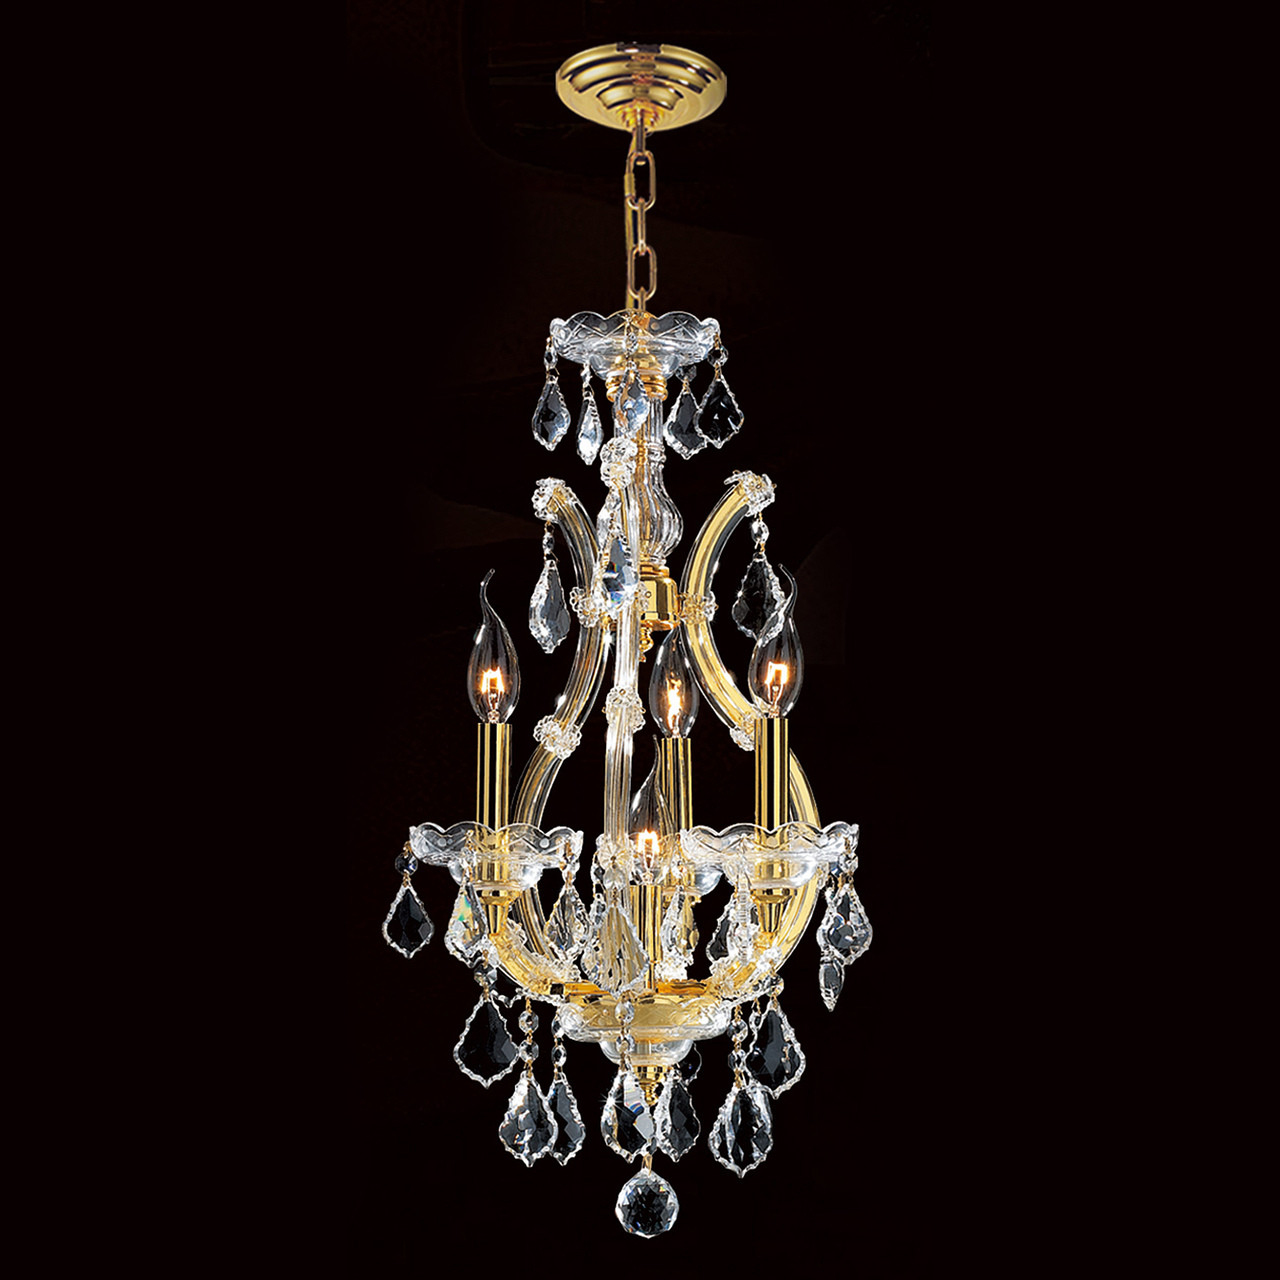 4 Light Maria Theresa mini crystal Chandeliers